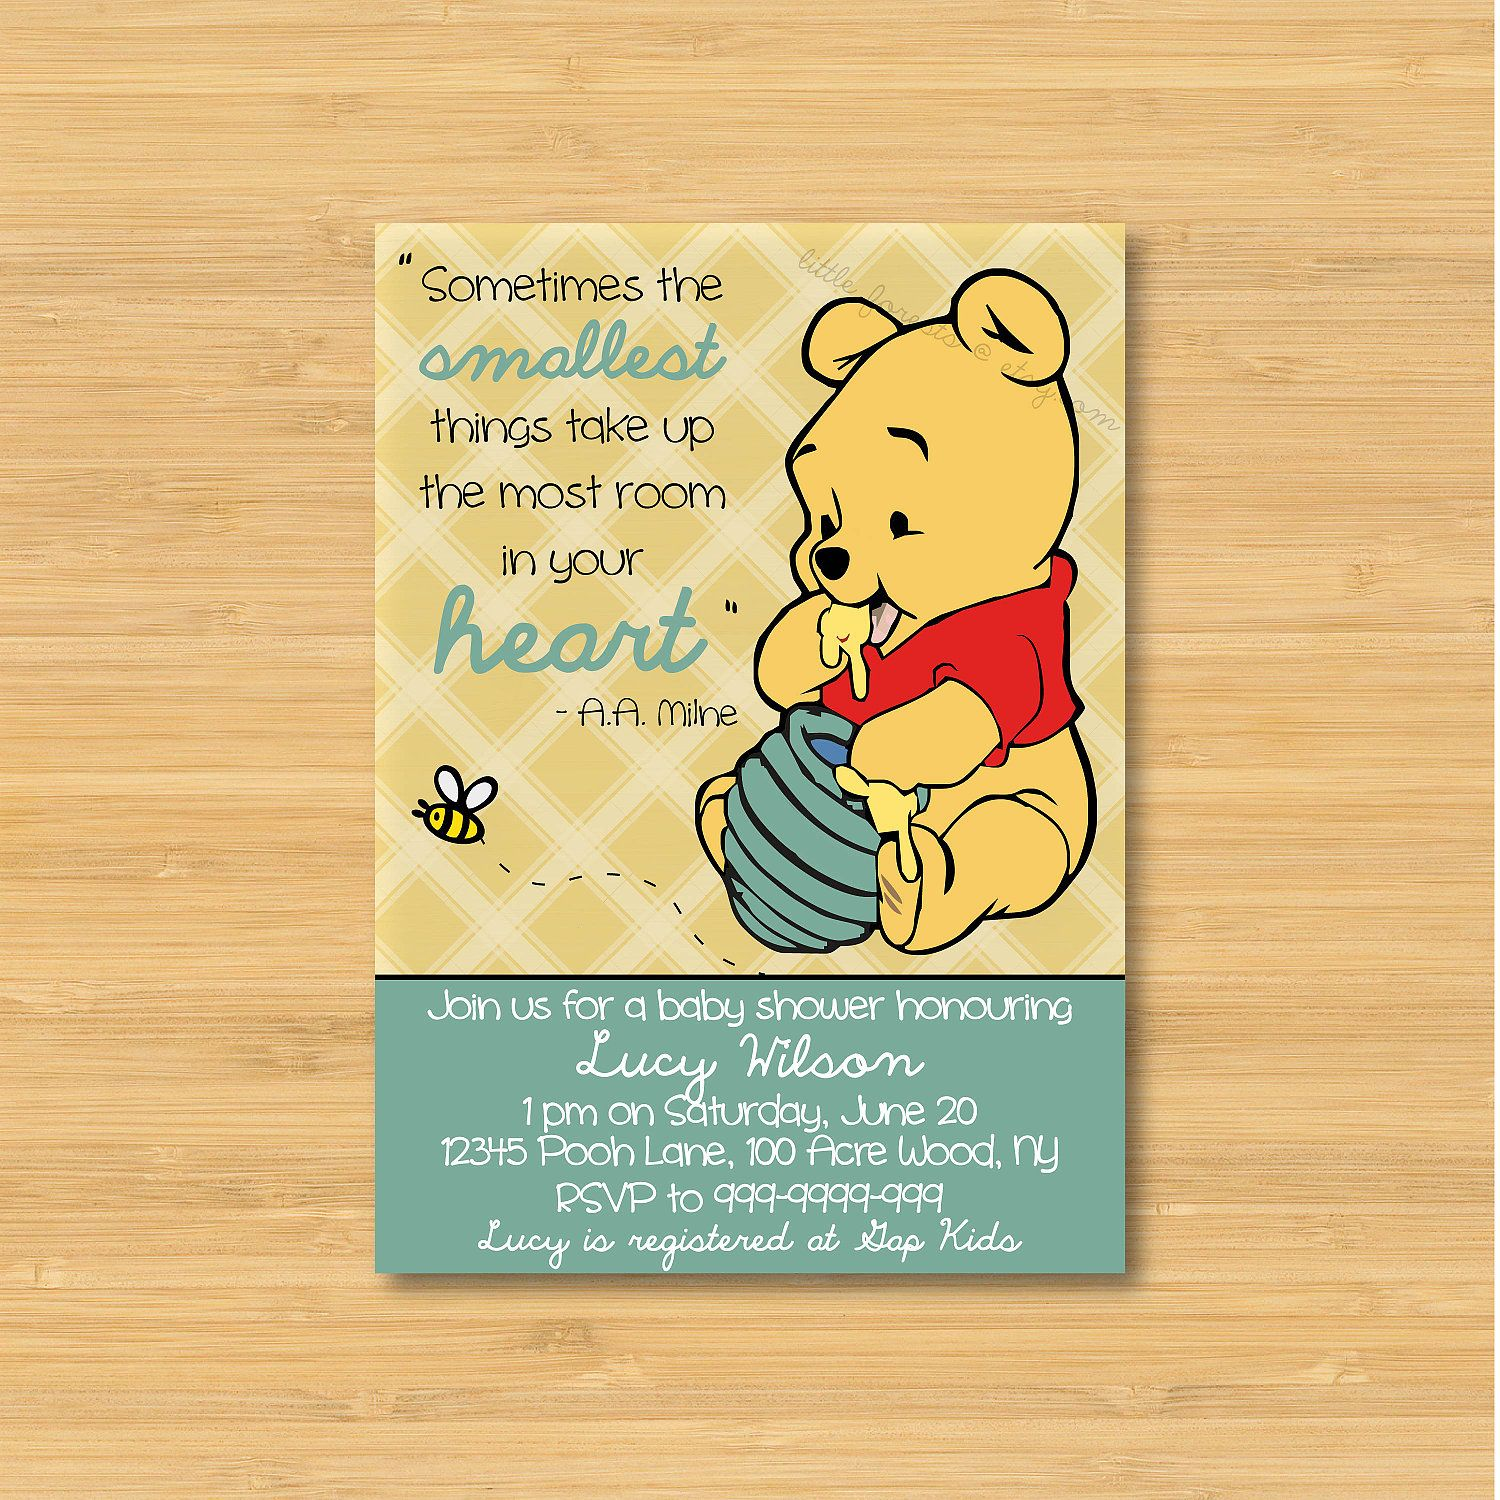 Winnie the pooh baby shower invitation printable the smallest winnie the pooh baby shower invitation printable the smallest things gender neutral filmwisefo Images